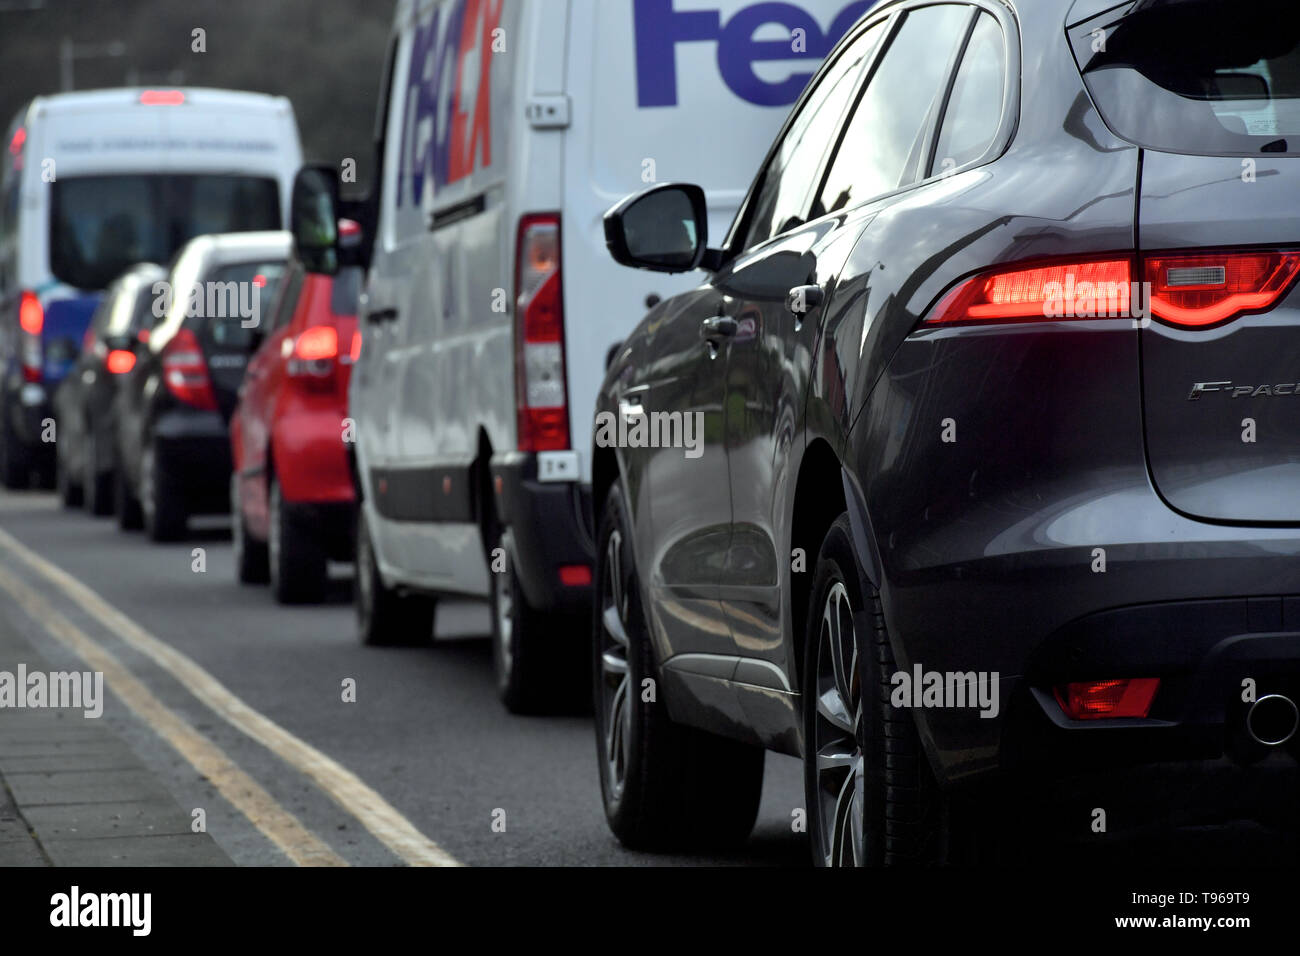 Traffic congestion on a UK road. - Stock Image